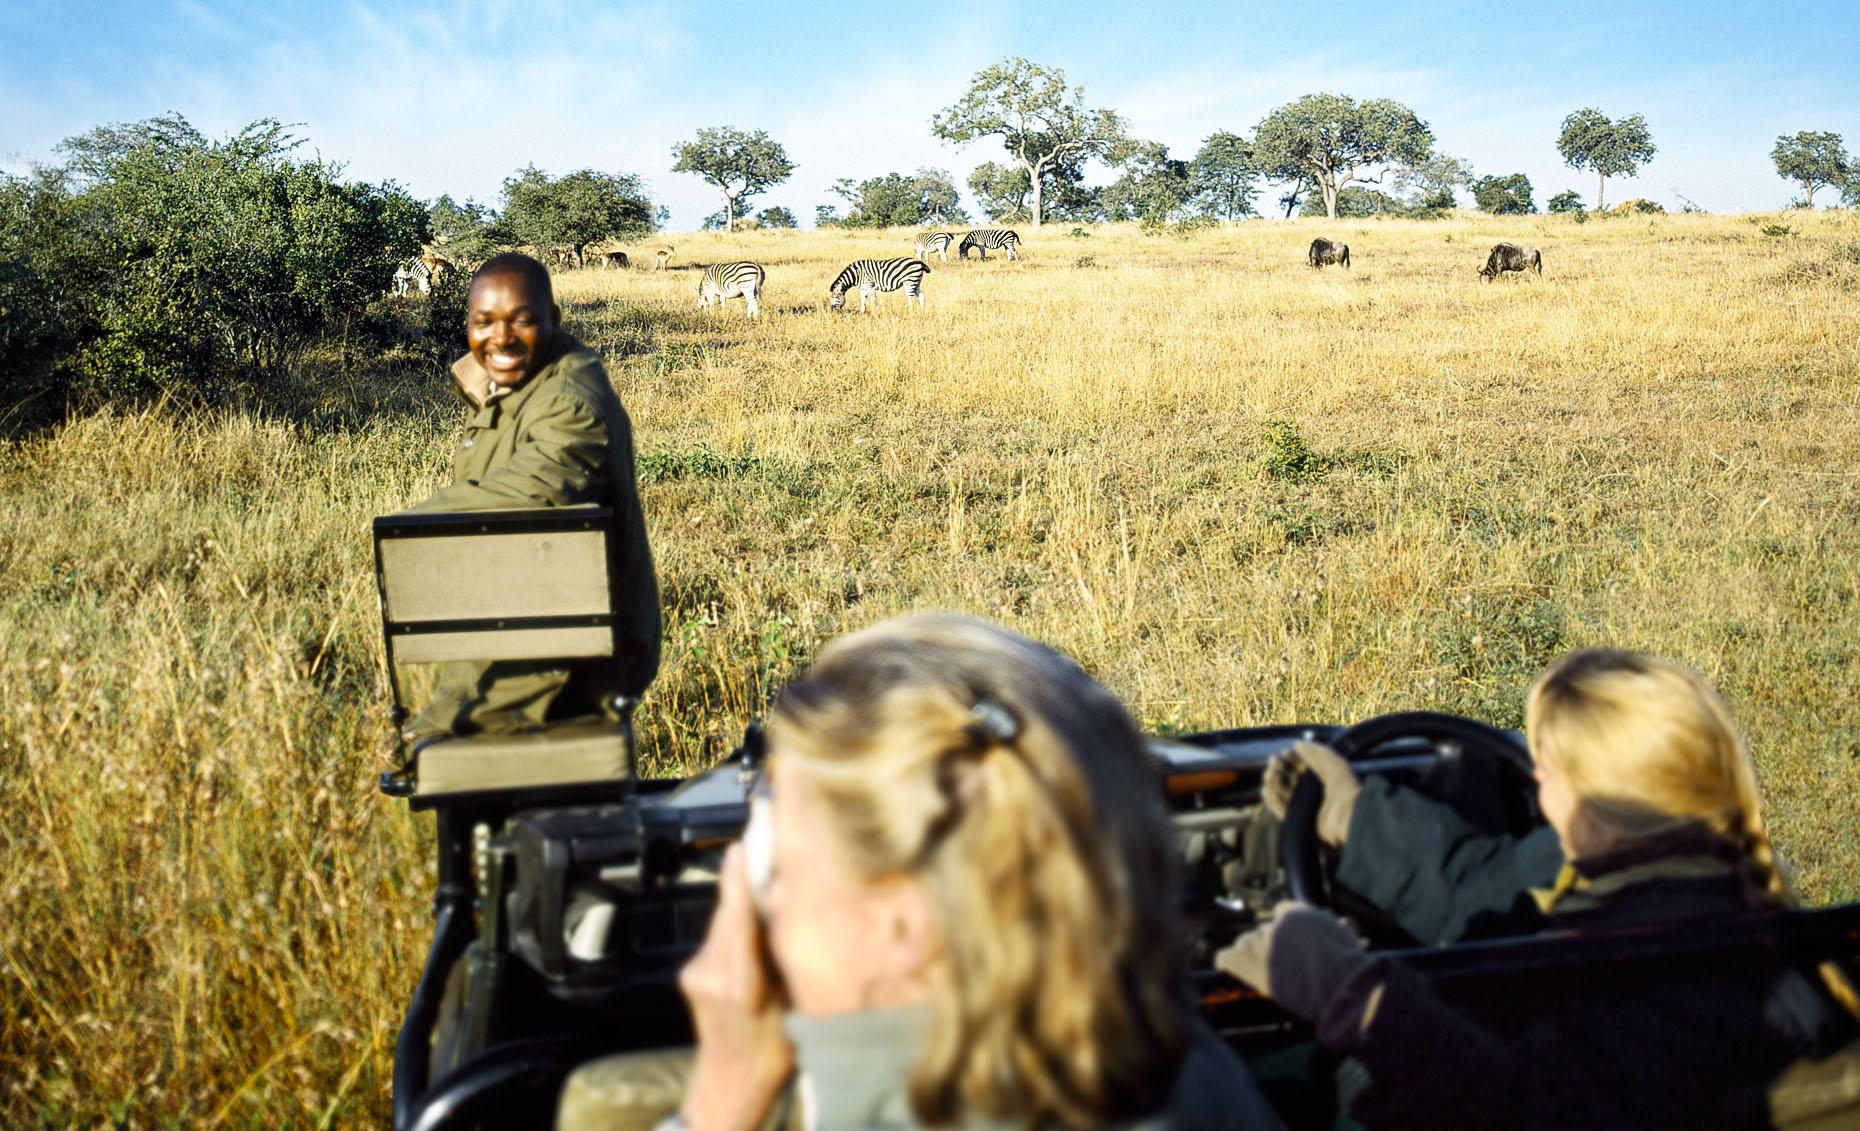 The tracker, whose seat is mounted on the front of the safari vehicle, spots a photo op of wildebeest and zebra